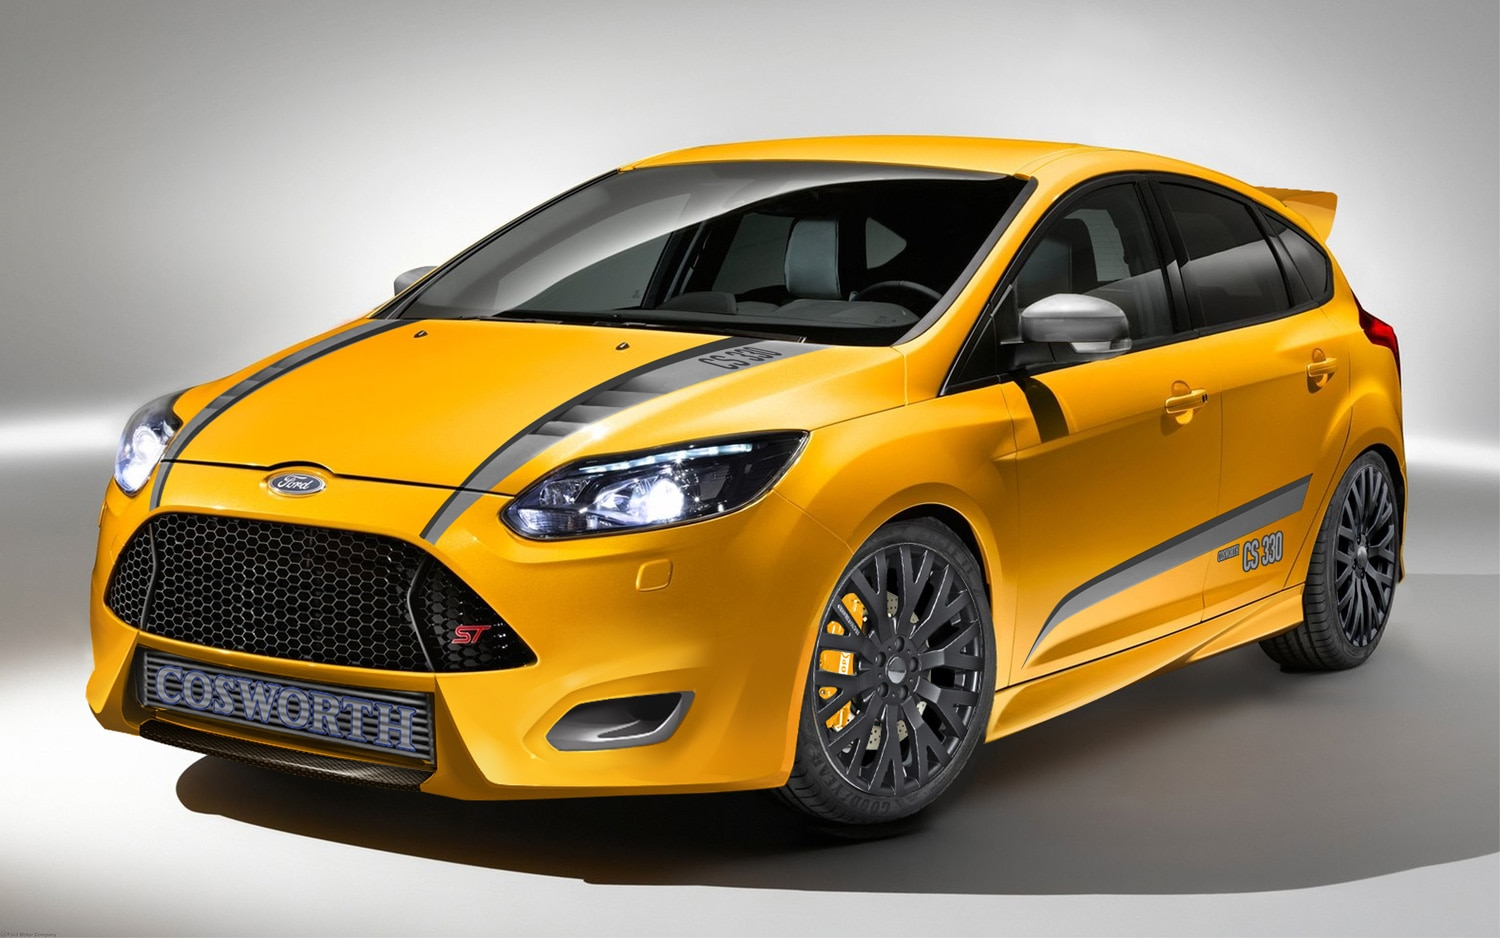 2013 Ford Focus ST By MJ Enterprises1